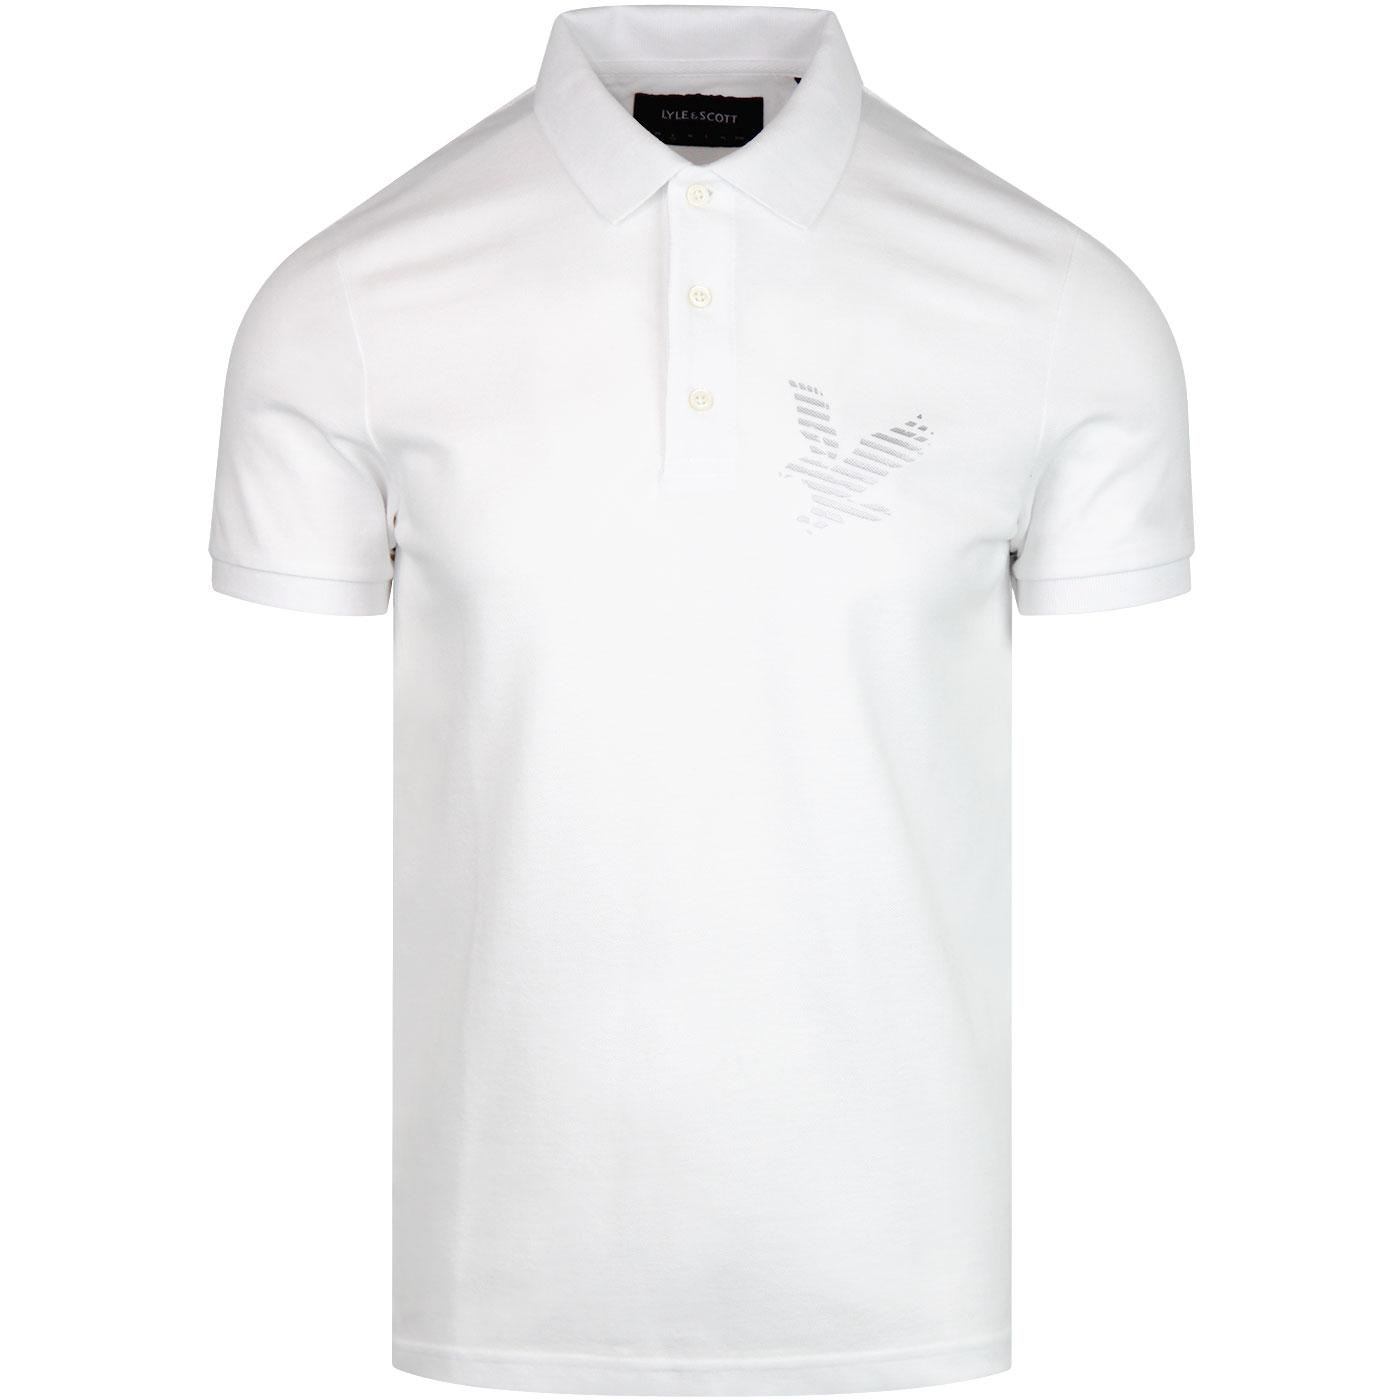 LYLE & SCOTT Casuals Retro Logo Polo Shirt WHITE